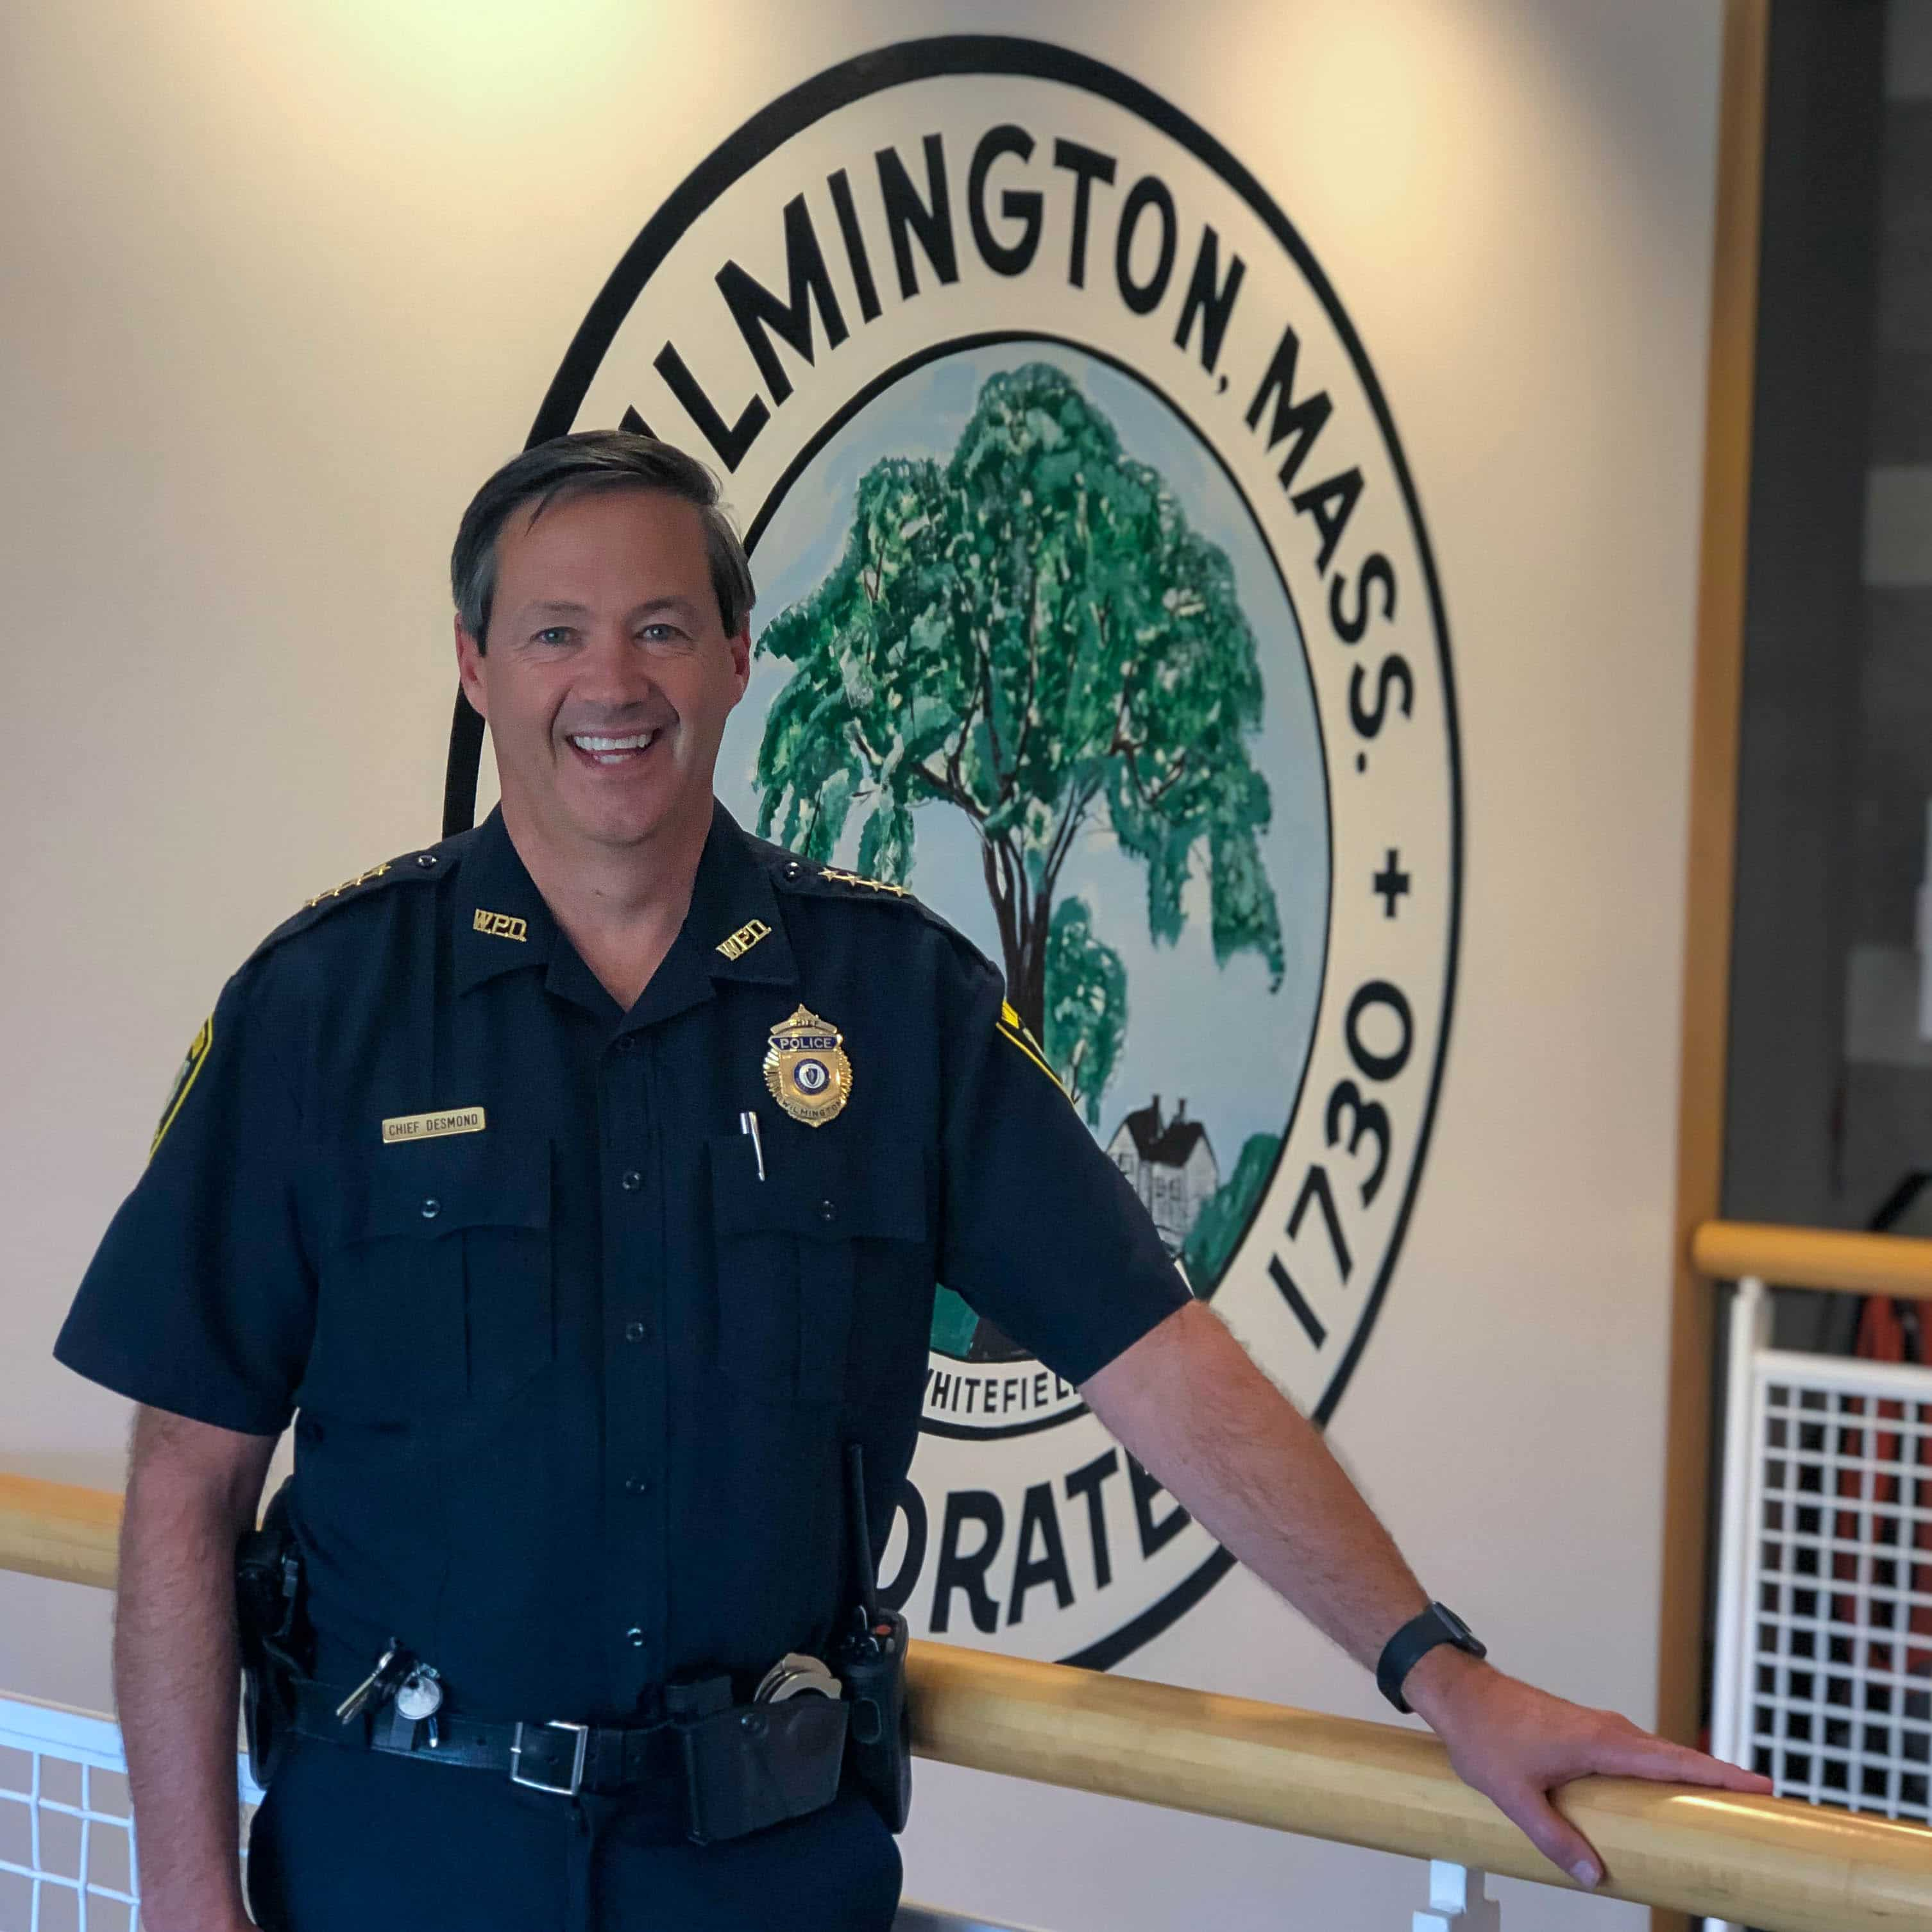 News Blog - Wilmington, MA Police Department